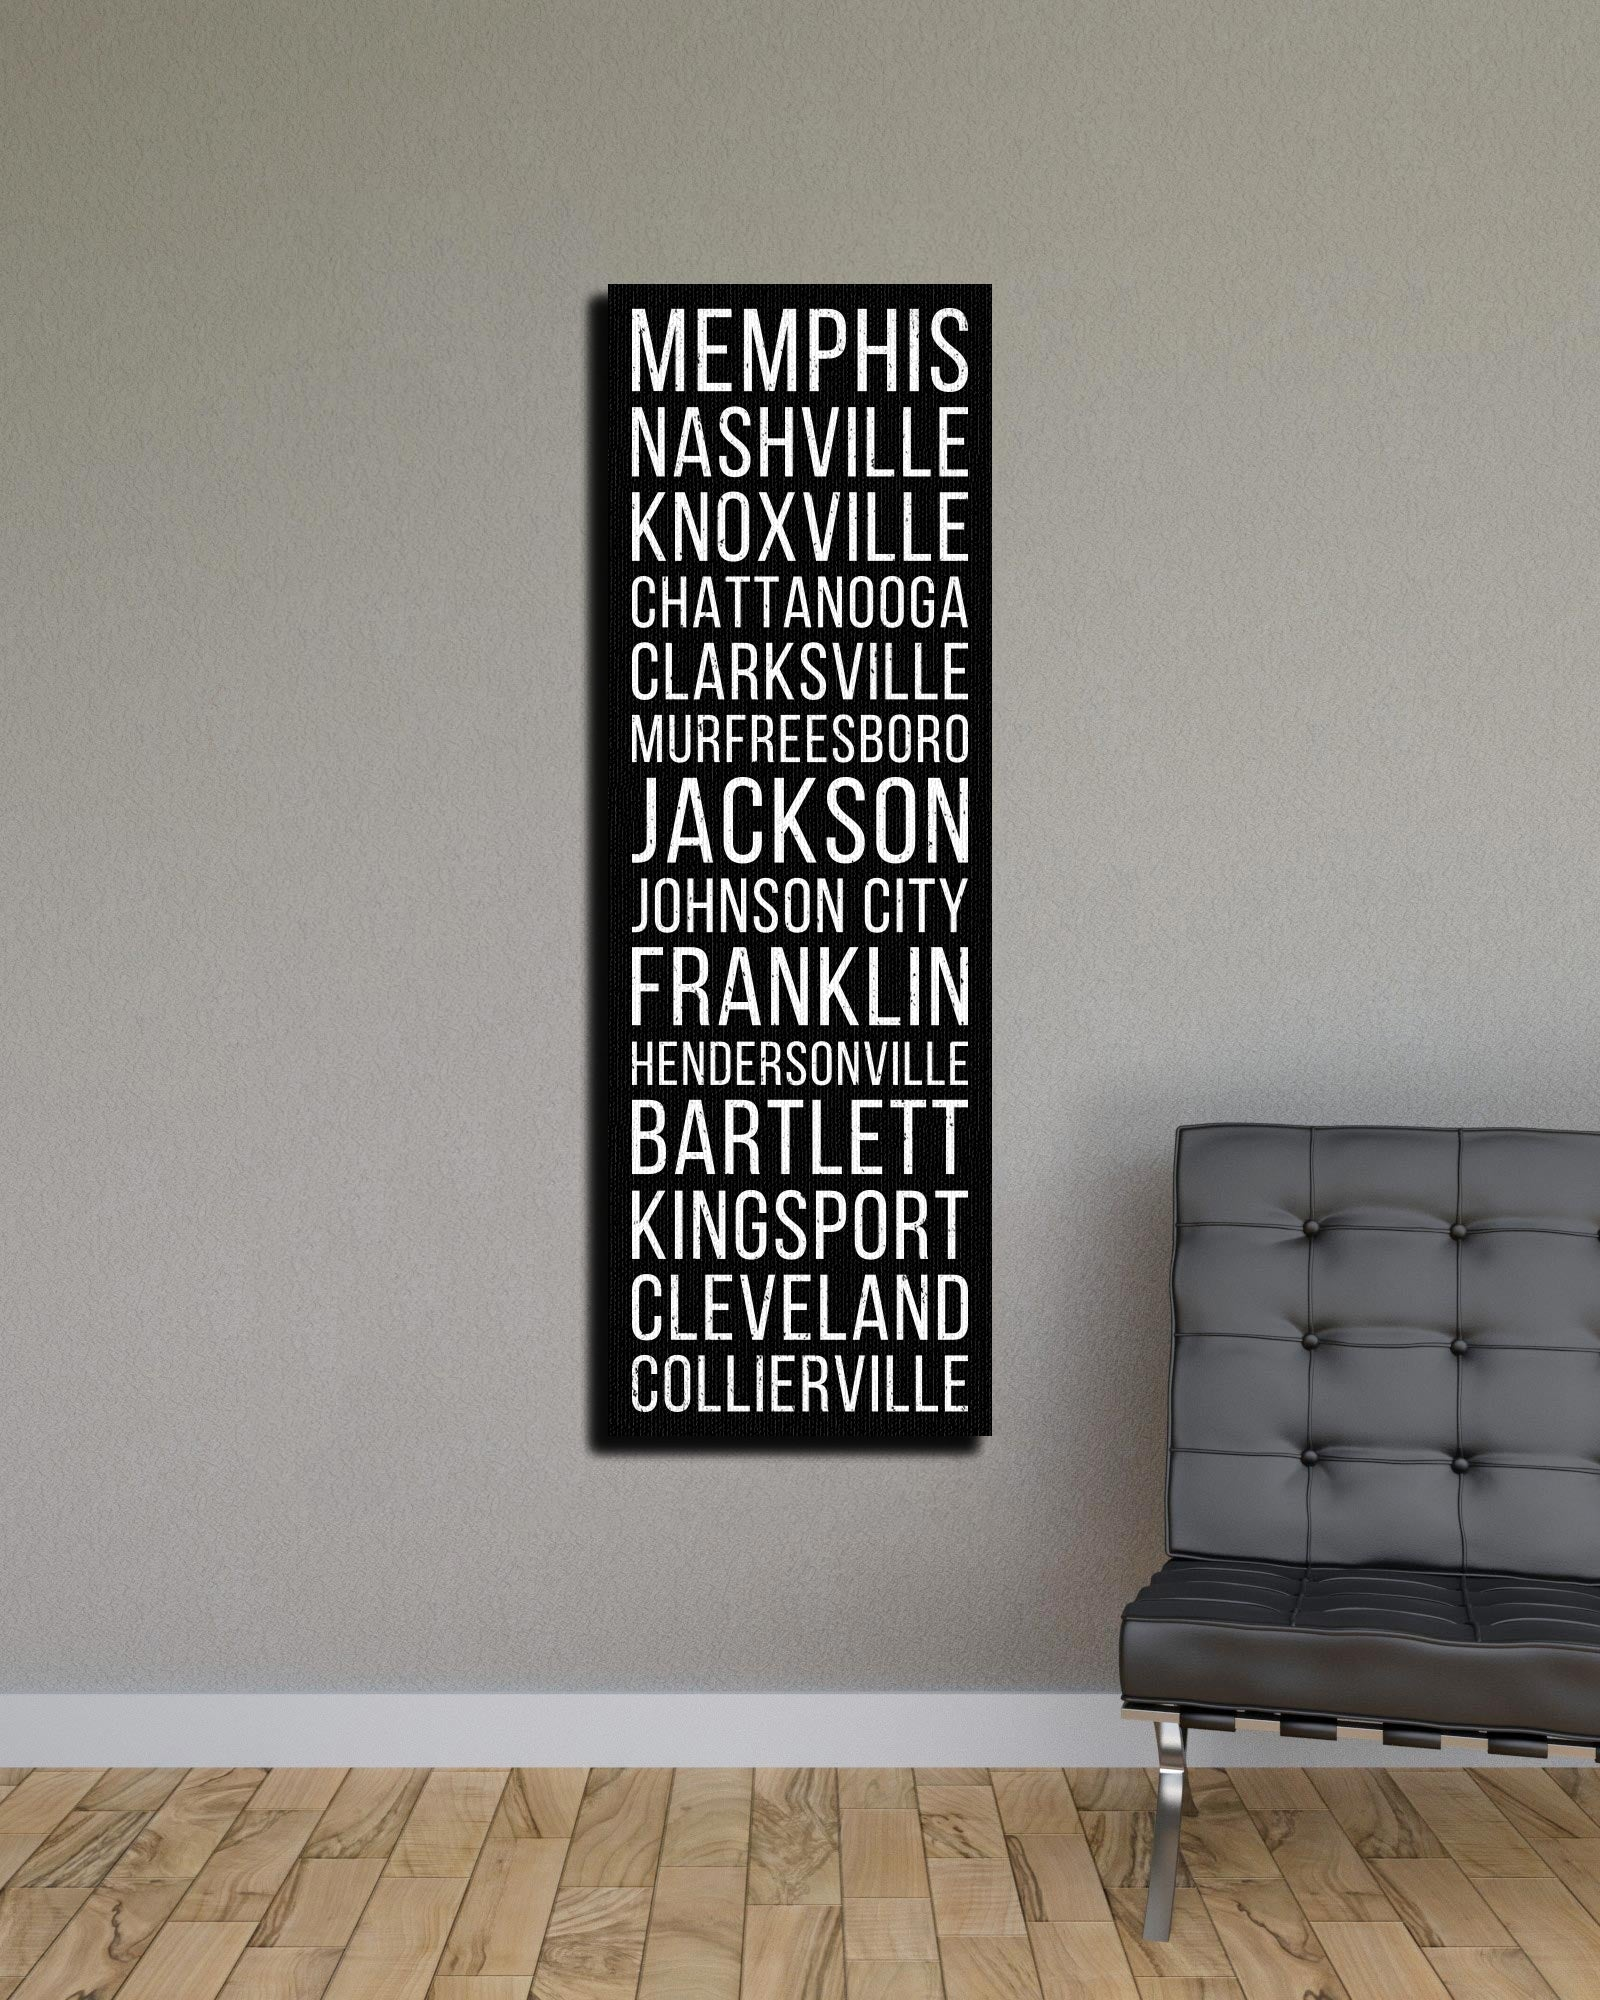 Tennessee Memphis Nashville Knoxville Bus Scroll Subway Canvas Print